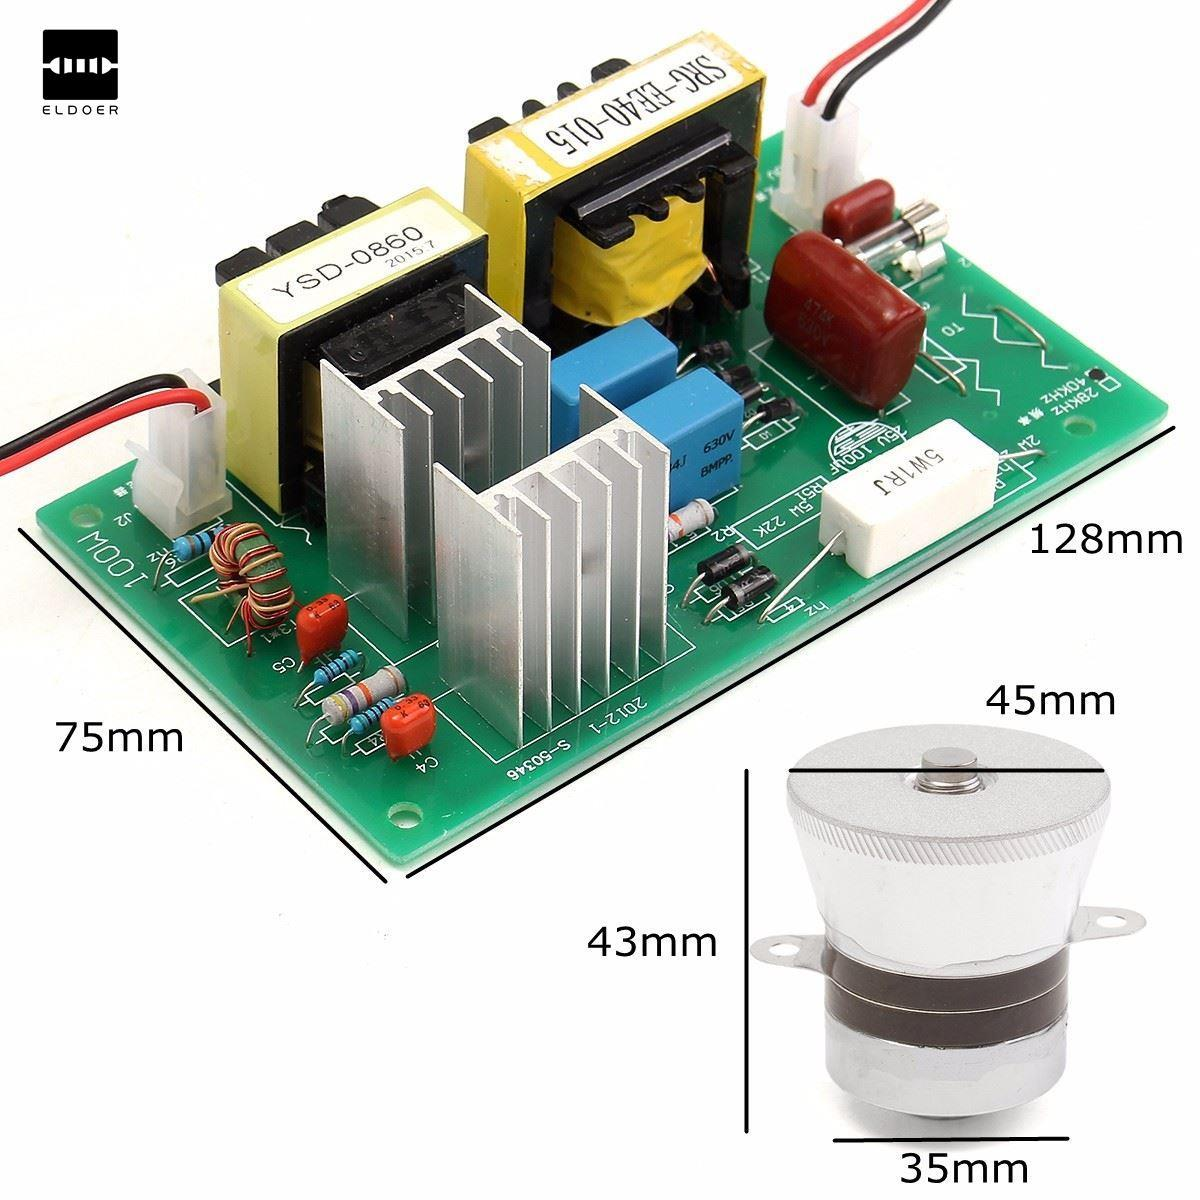 Ultrasonic Cleaning Transducer Cleaner Power Driver Board Electronic Components Integrated Circuitsicsicchina Mainland 110vac 50w 40khz High Quality Ultr China C Suppliers Circuits Online With 9103 Piece On Wcr0406s Store